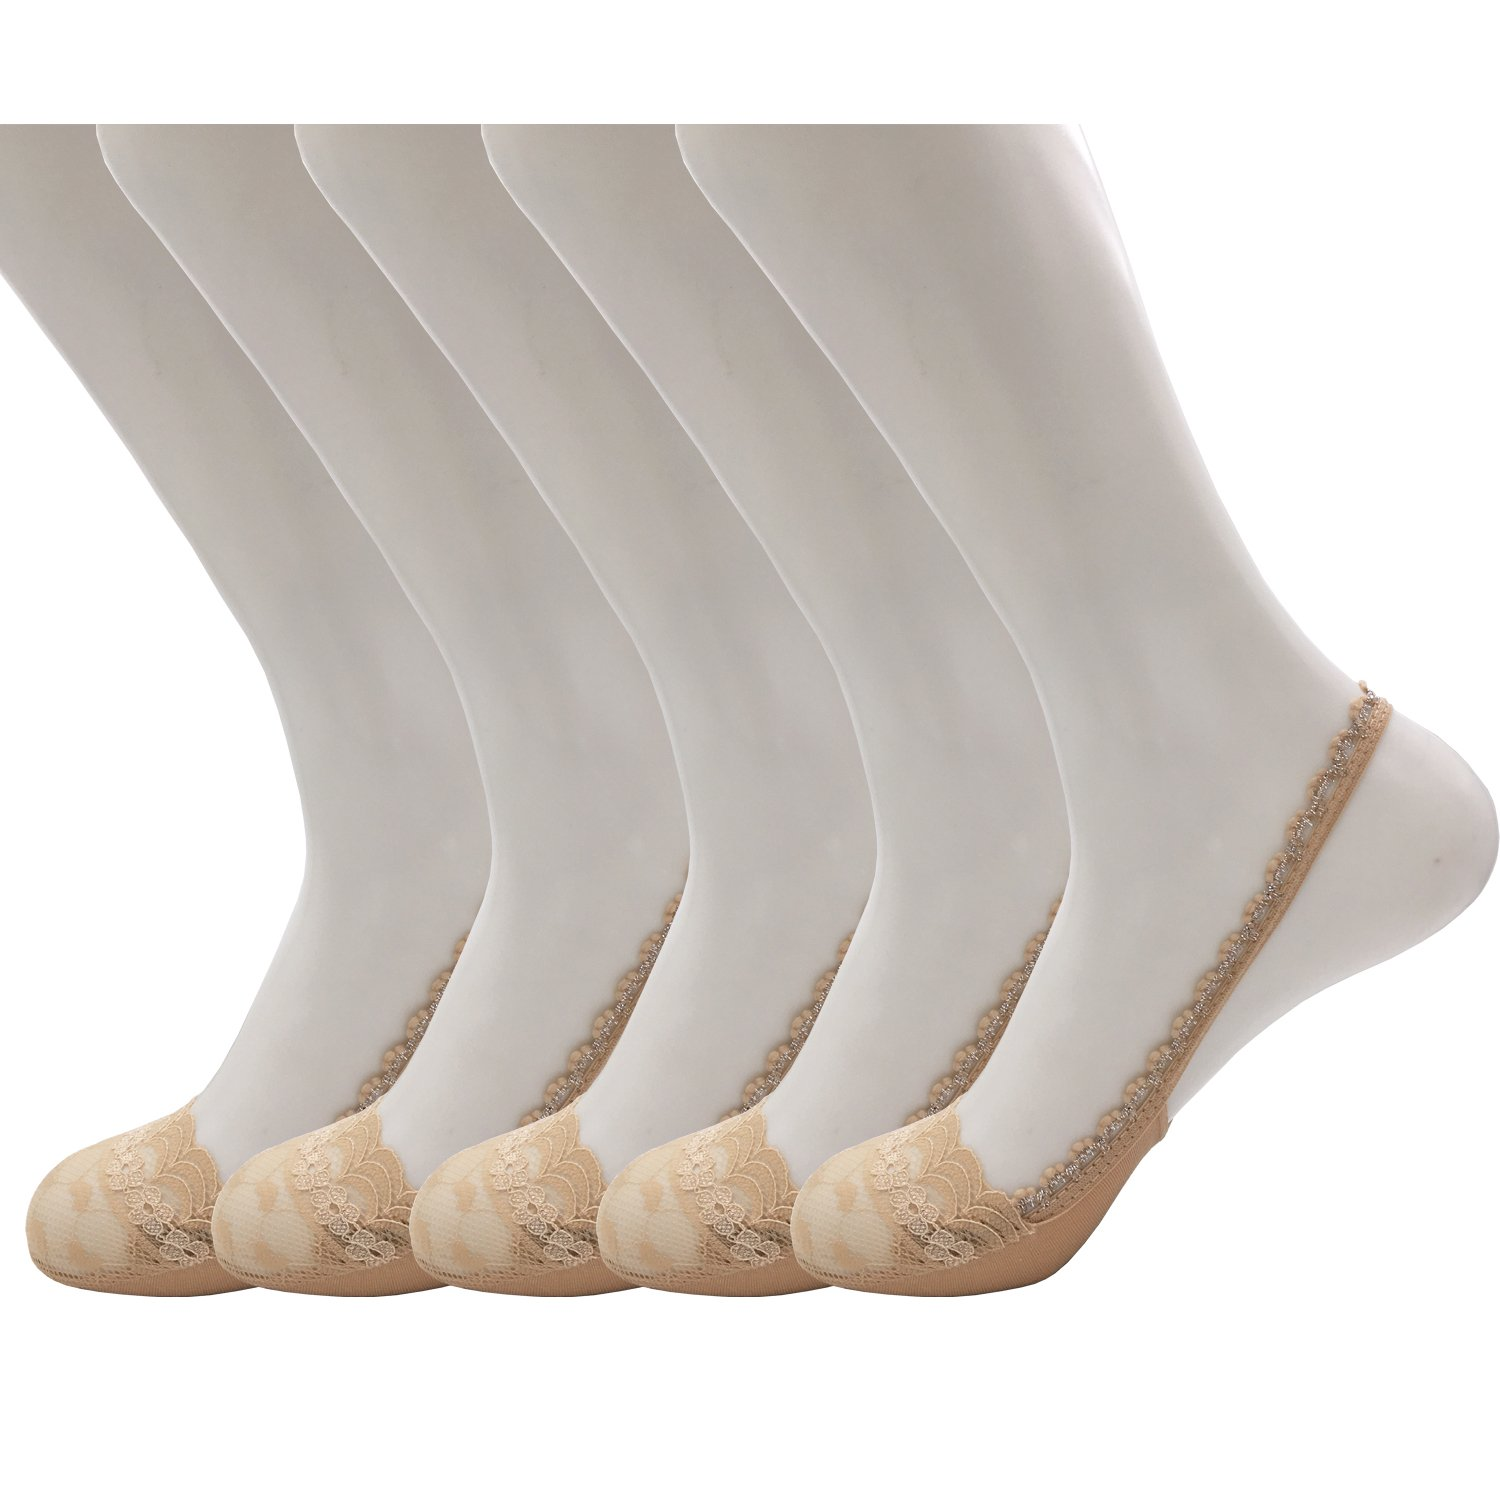 Vraquir Women's Toe Topper Liner Socks Lace Toe Cover Low Cut Hidden Half Socks with Sling Back,5 Pairs